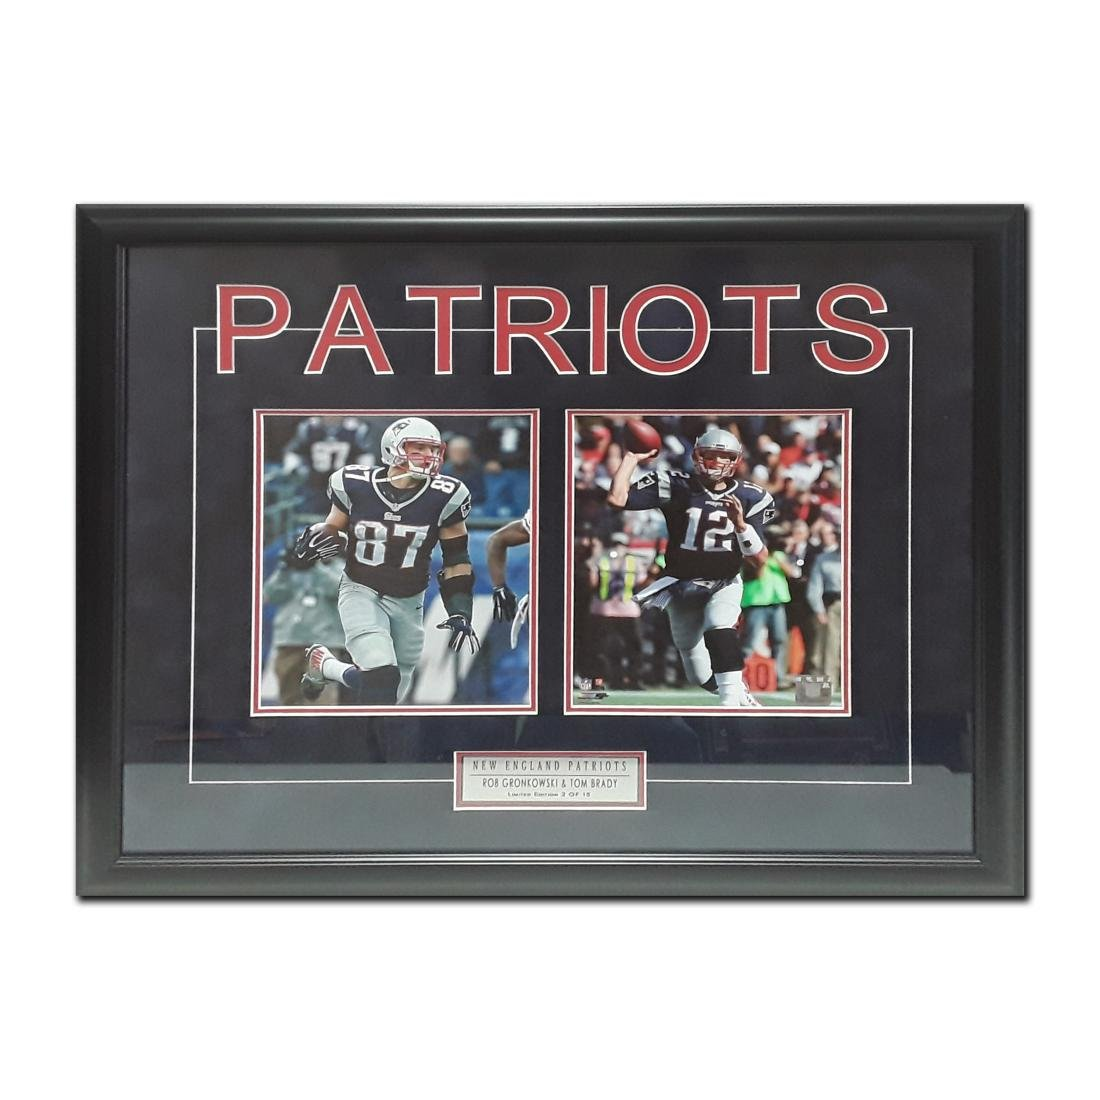 Rob Gronkowski and Tom Brady Limited Edition Framed